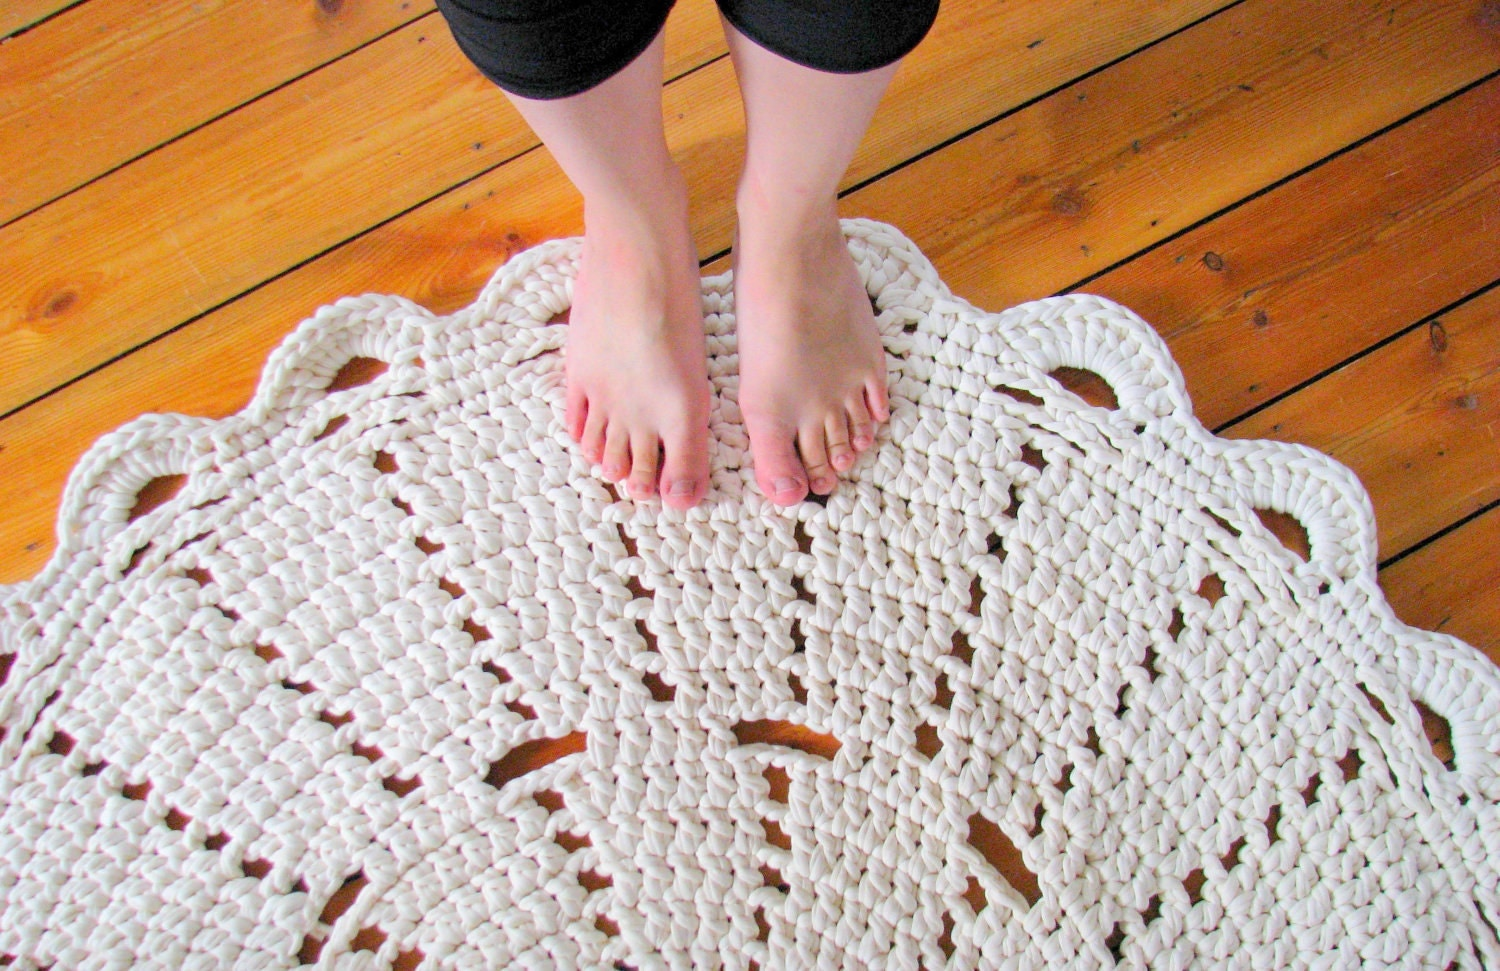 Crochet Yarn For Beginners : THREAD CROCHET DOILY PATTERNS Crochet For Beginners